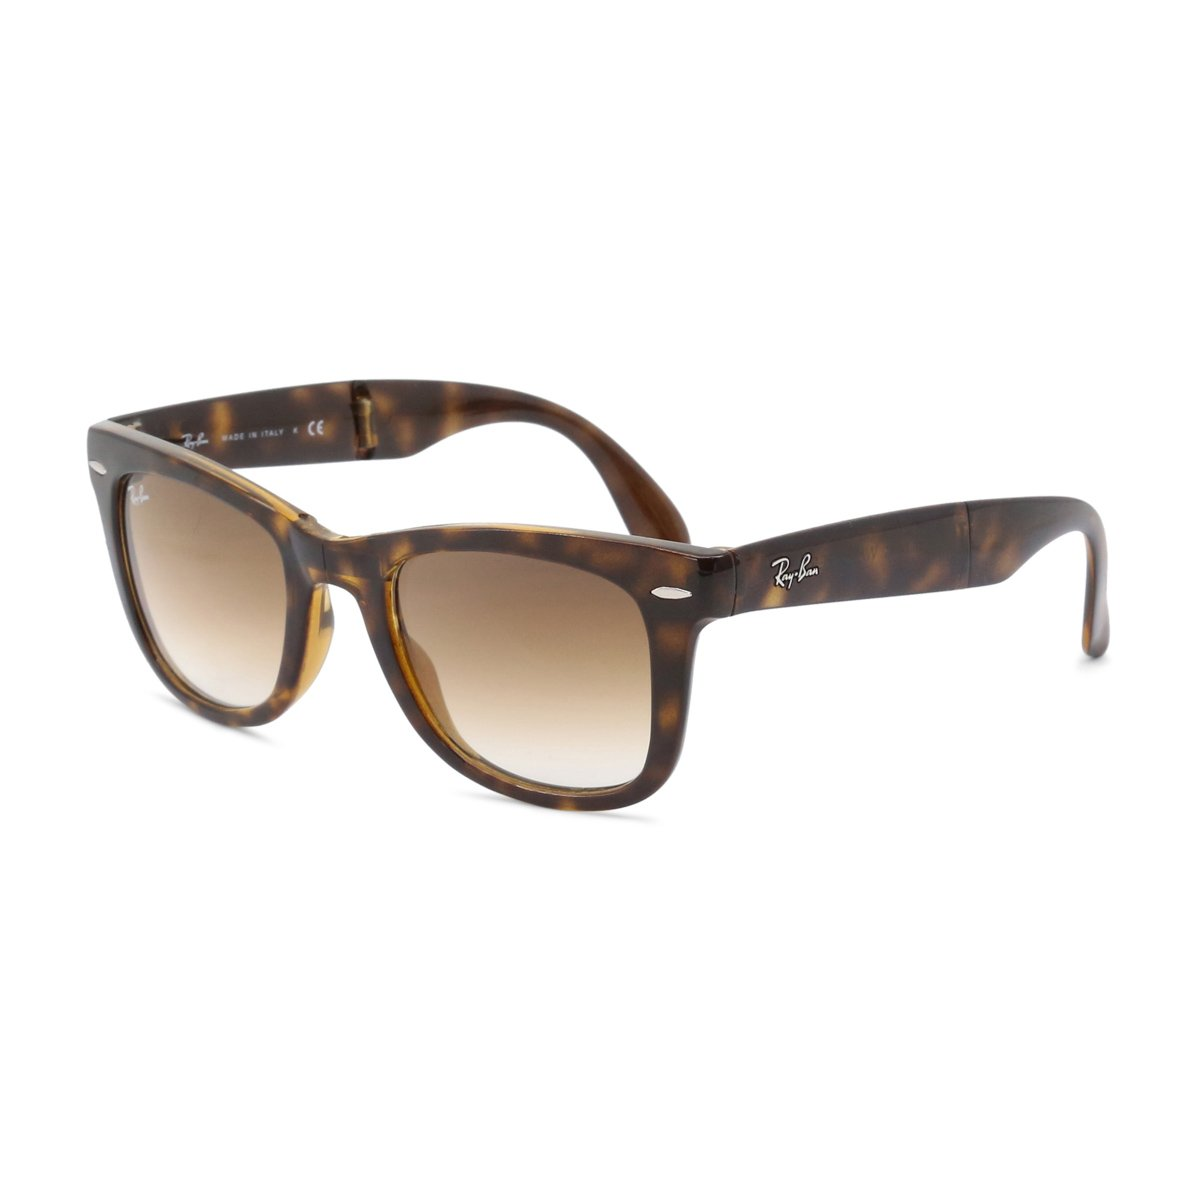 Ray-Ban Unisex Sunglasses Various Colours 0RB4105 - brown-1 NOSIZE